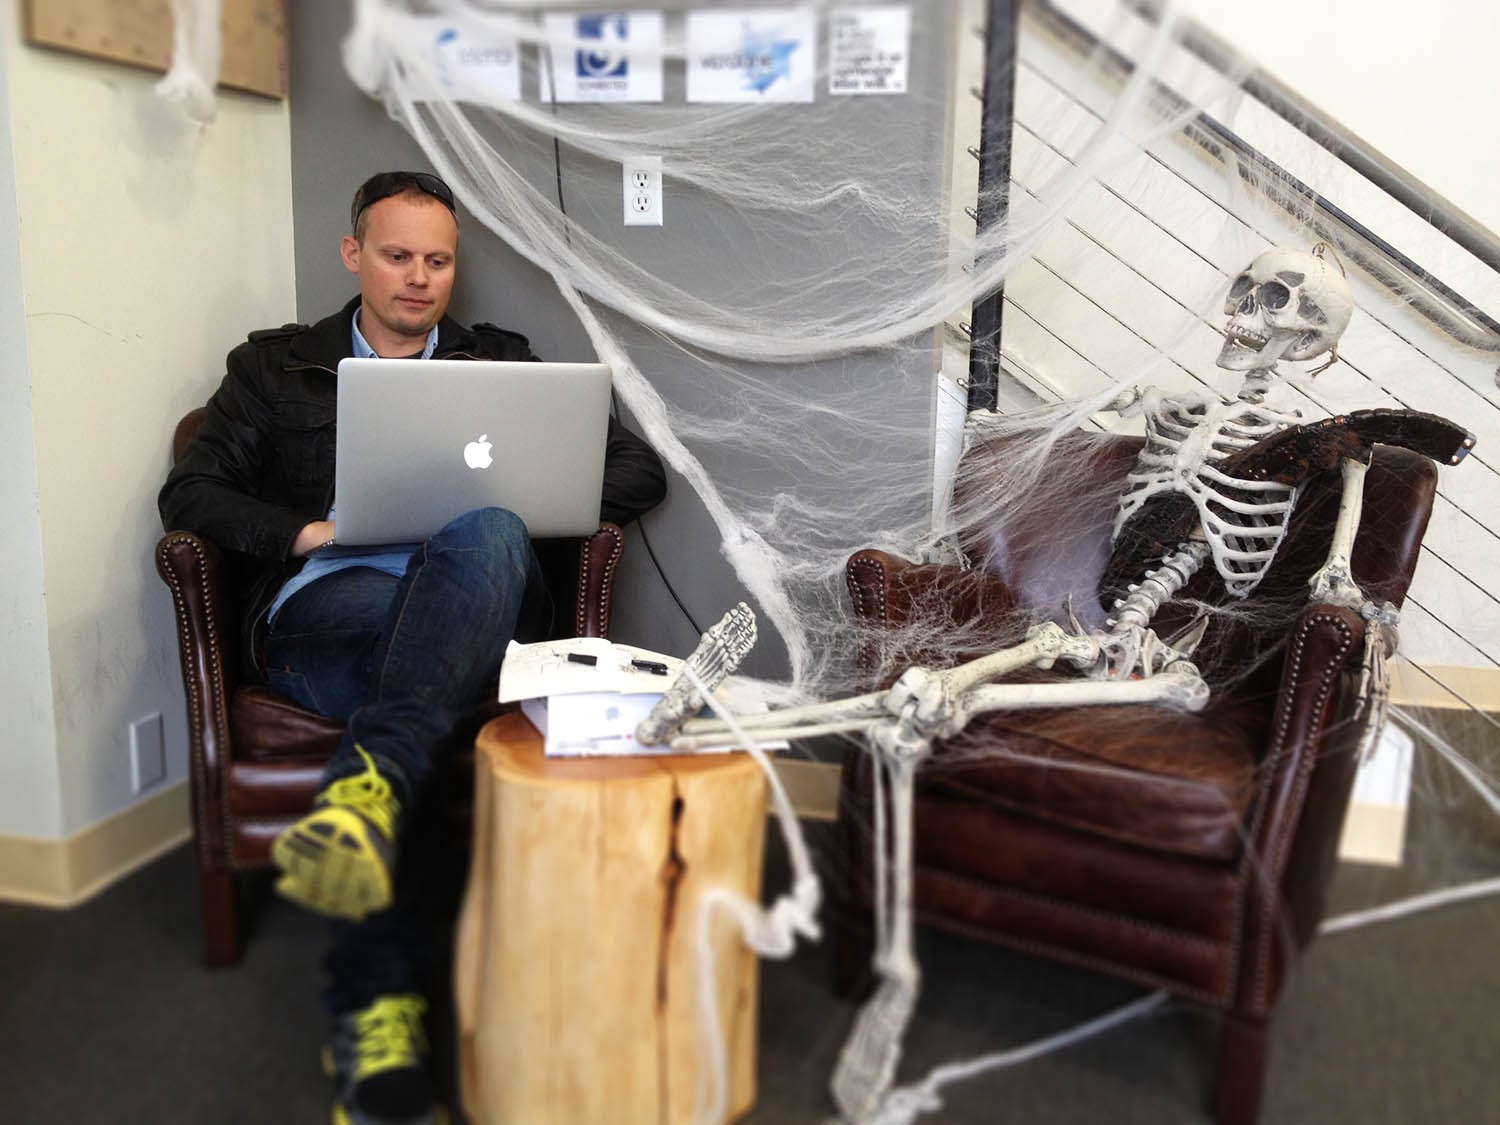 Normal day at the office (Innovation House, Palo Alto)